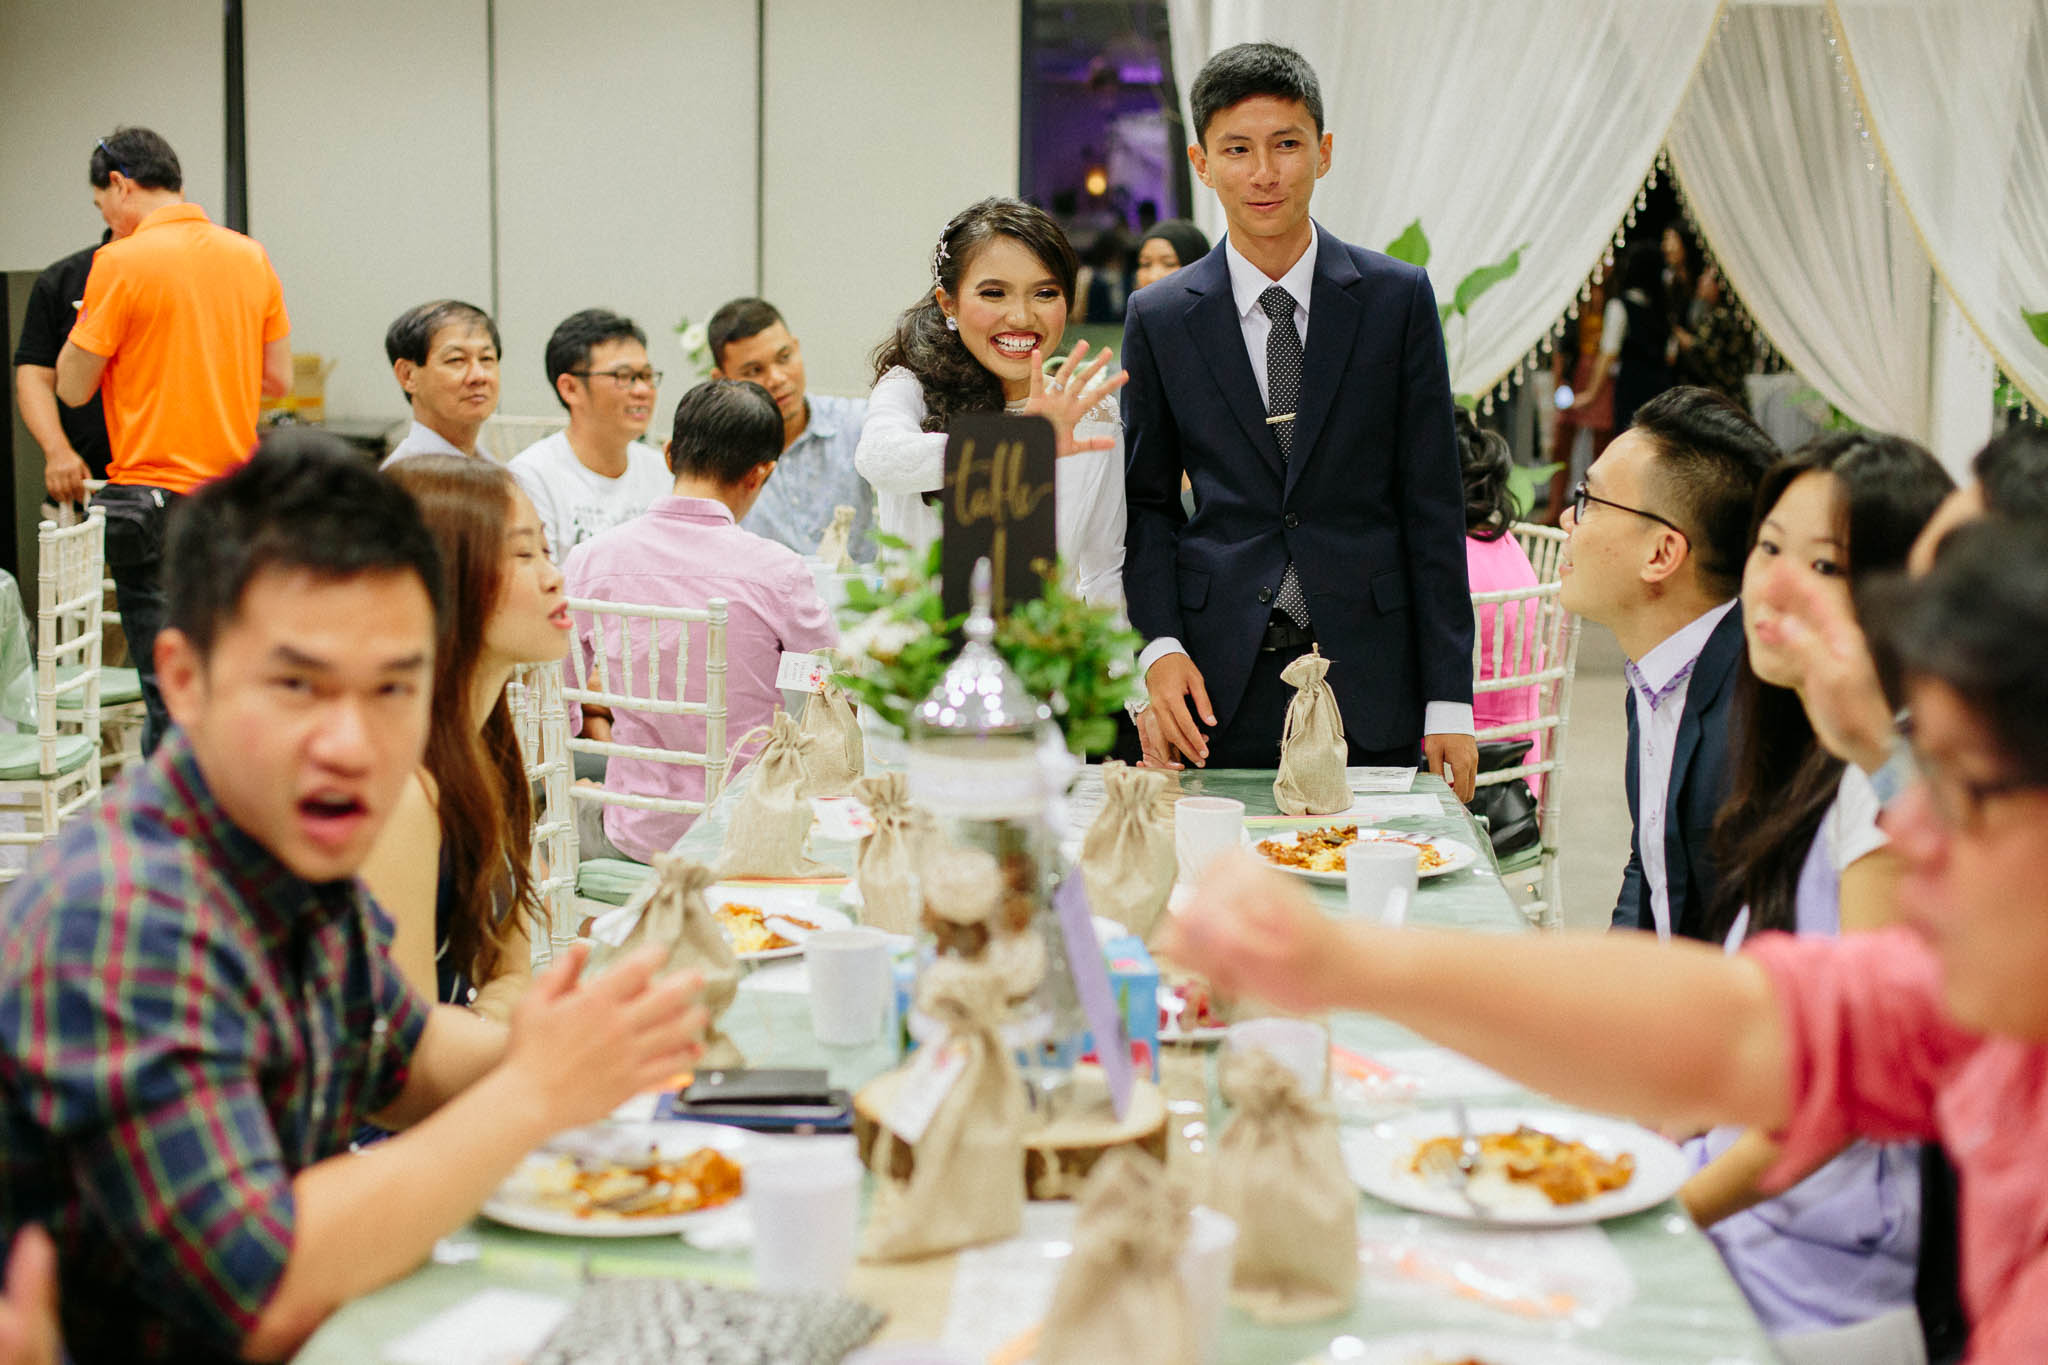 singapore-wedding-photographer-we-made-these-2016-selects-081.jpg